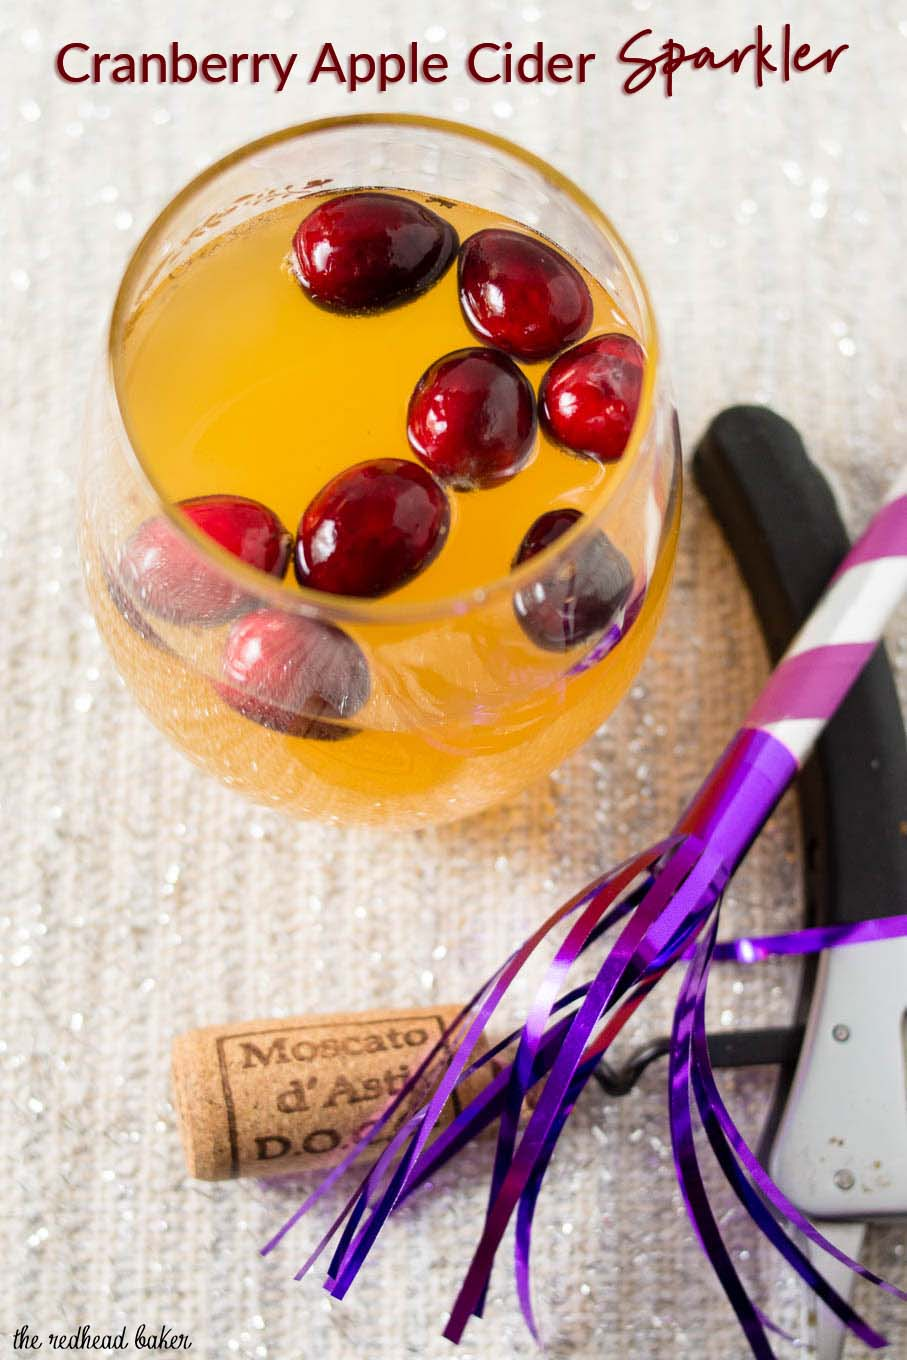 Ring in the new year with this cranberry apple cider sparkler, a cocktail that combine sparkling wine with the winter flavors of apple and cranberry. #CocktailParty